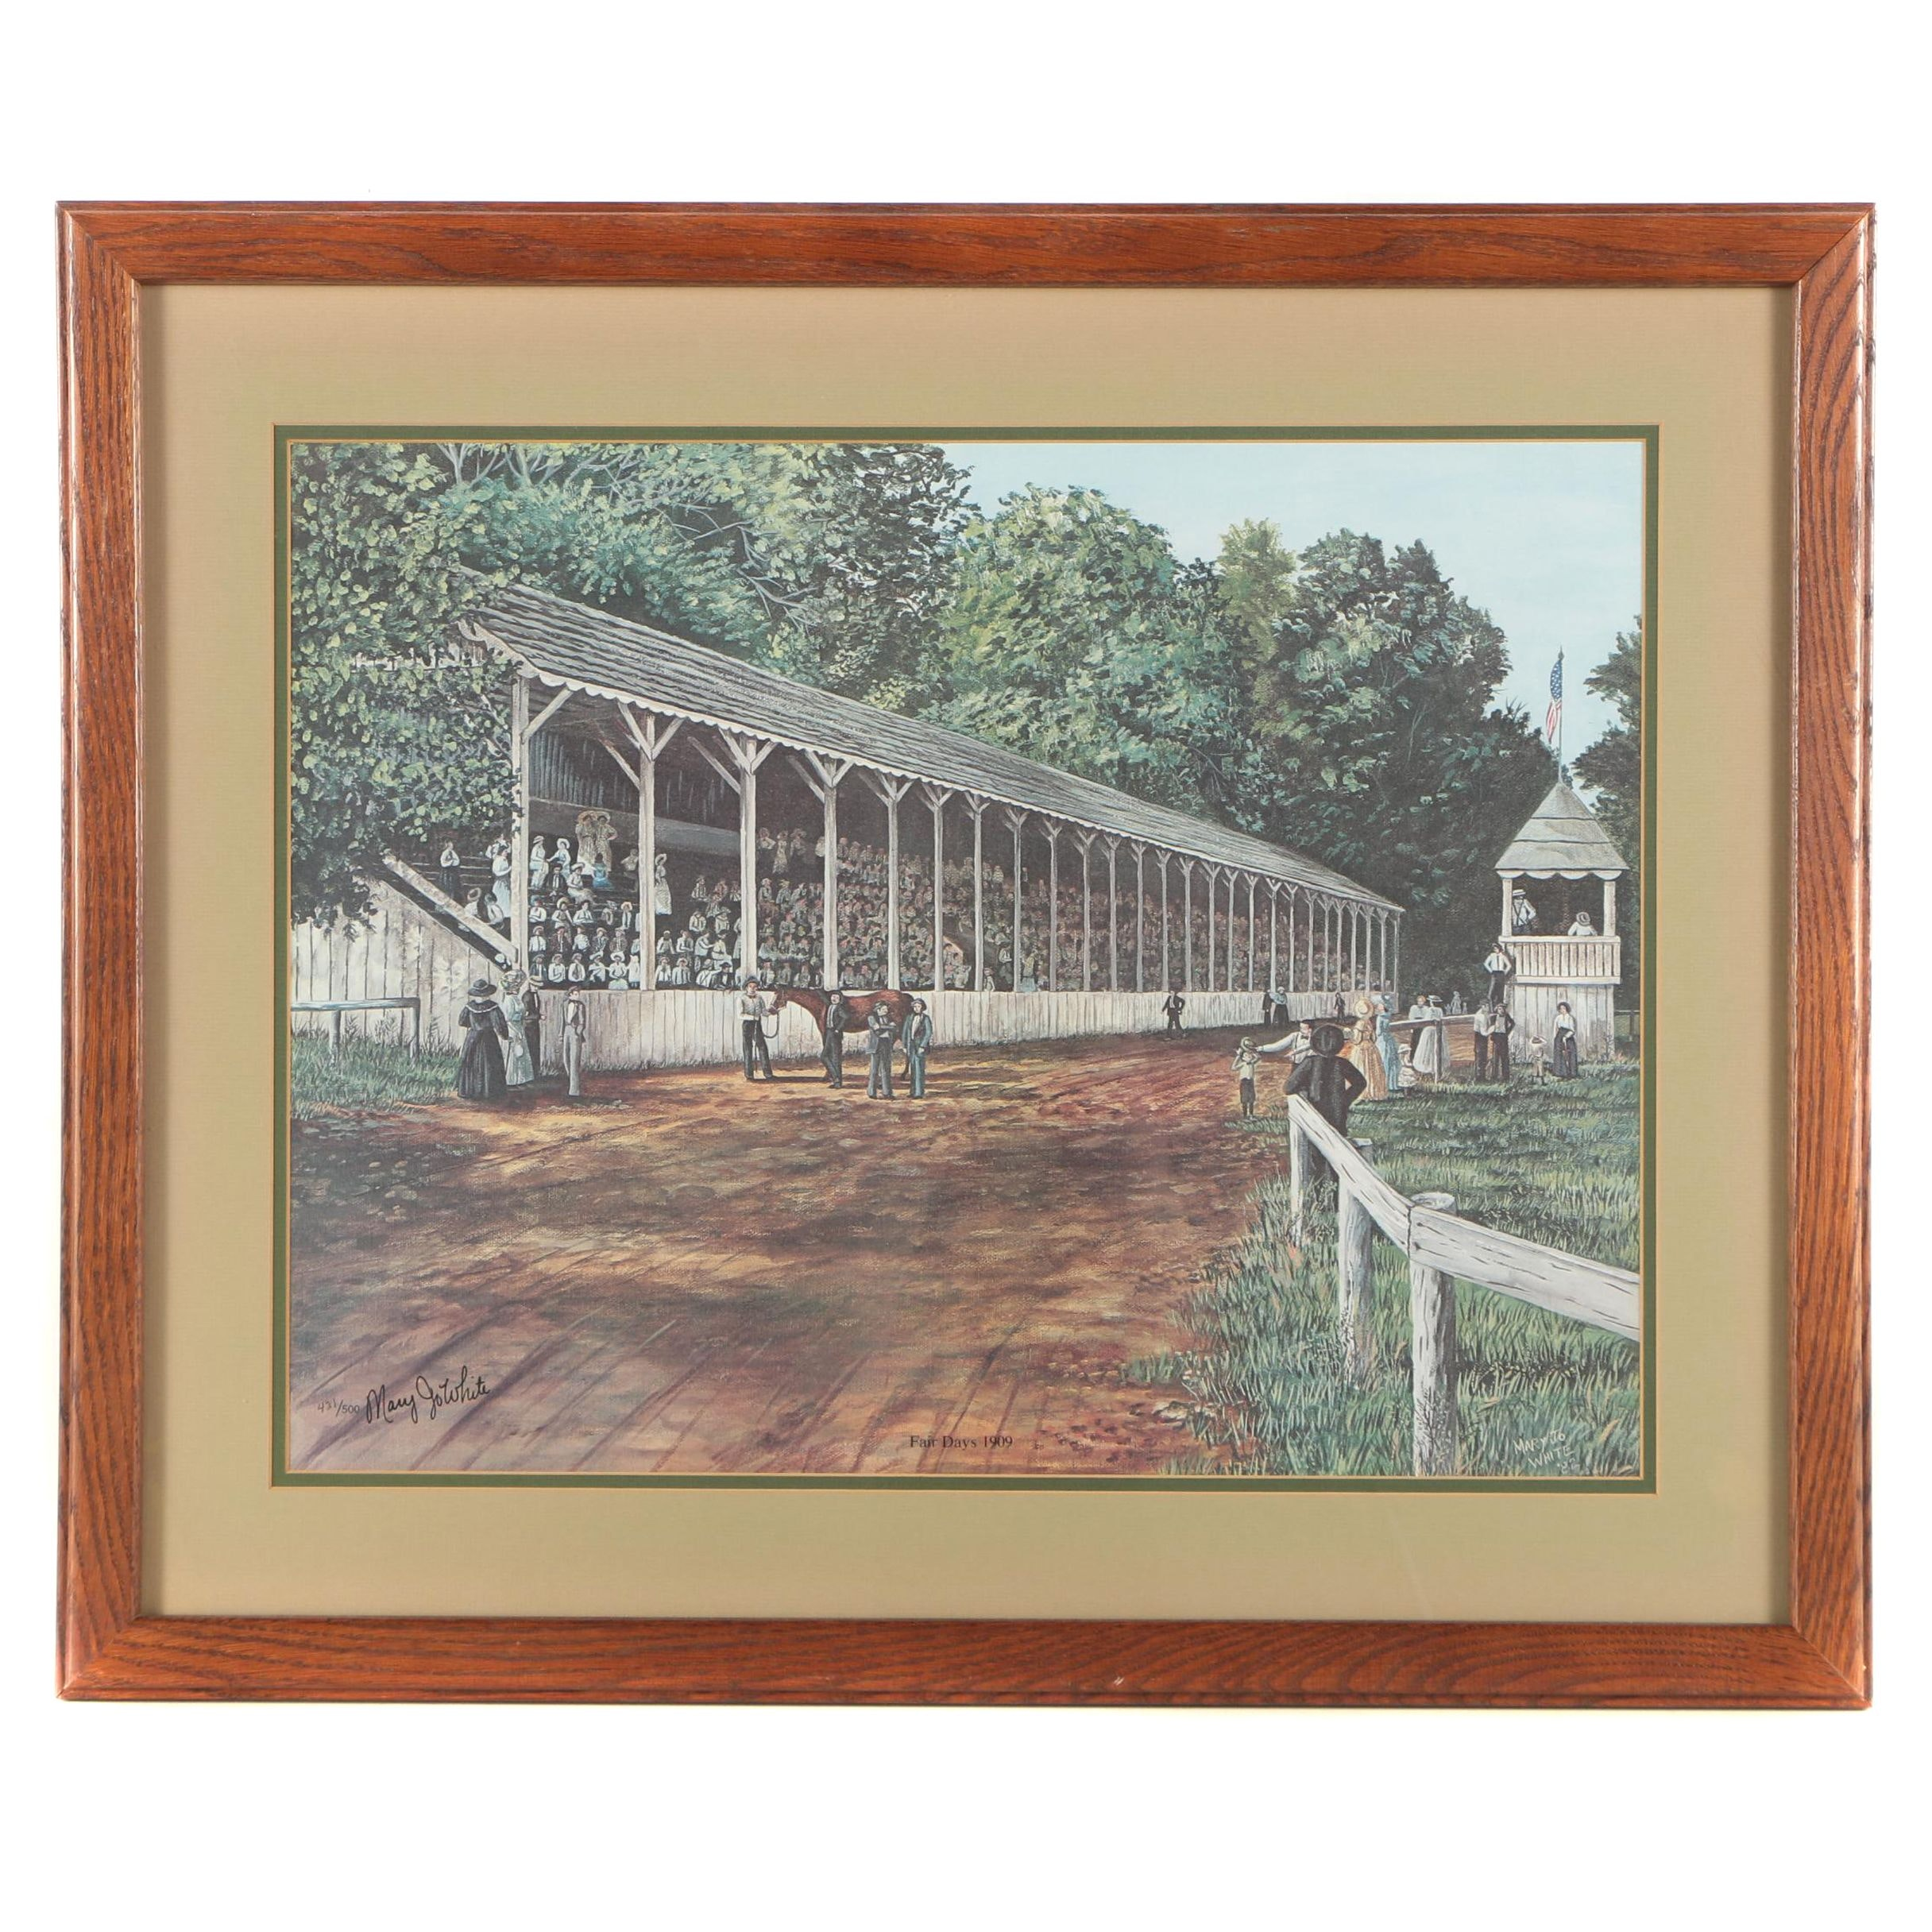 "Mary Joe White Limited Edition Offset Lithograph ""Fair Days 1909"""